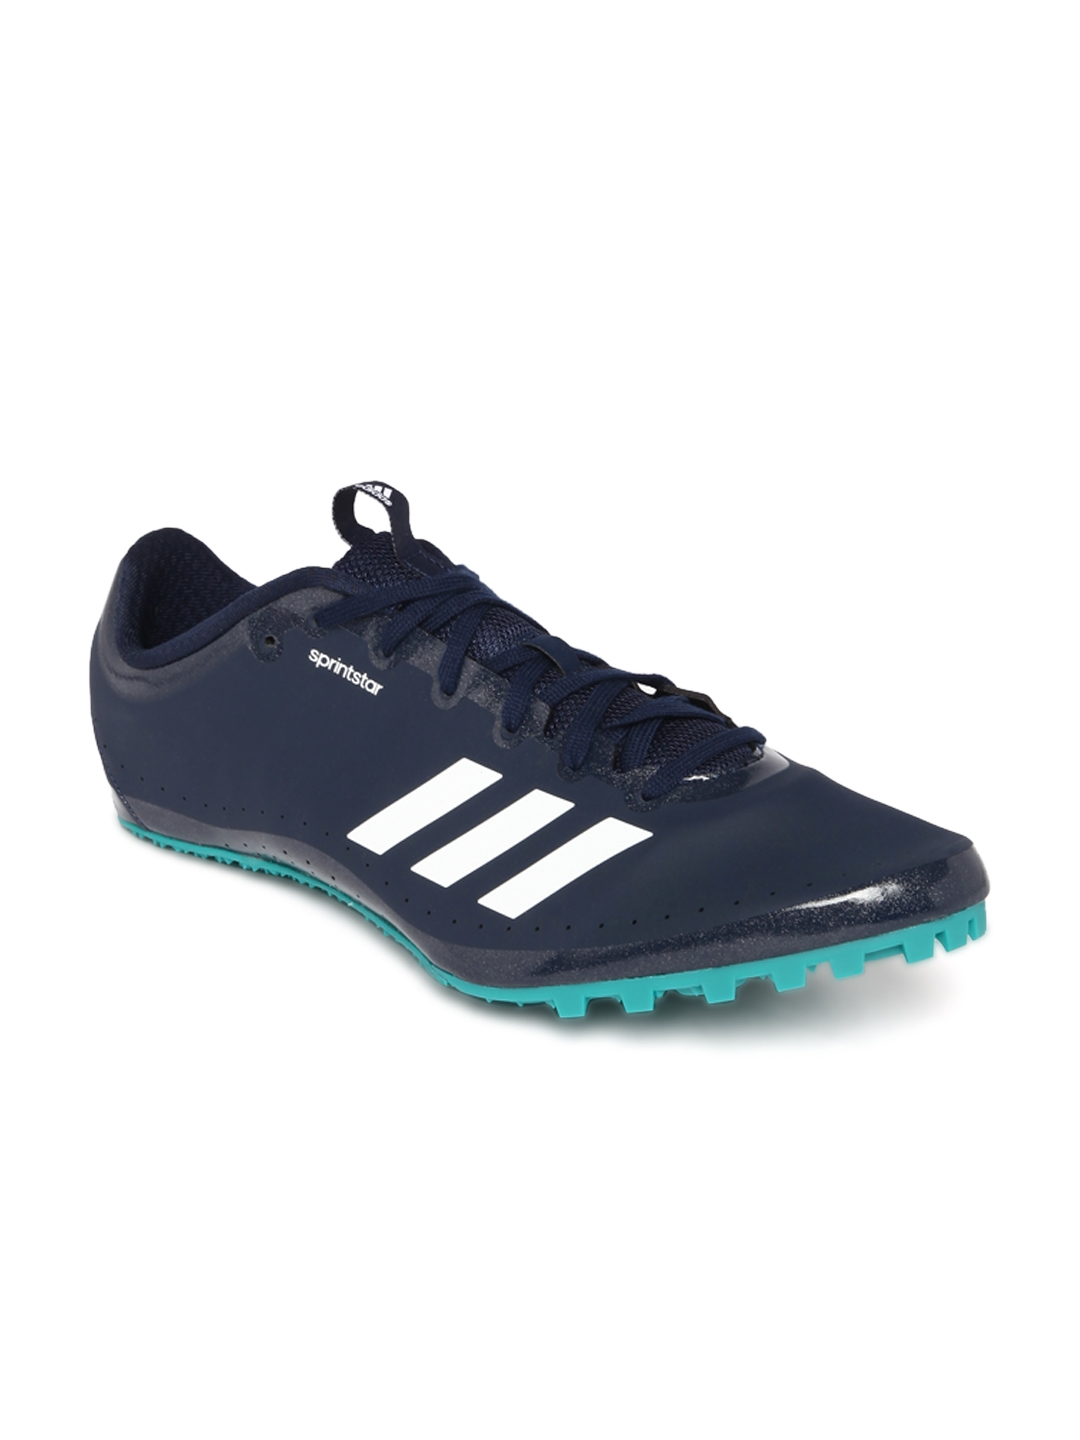 outlet store e27ba 67548 ADIDAS Men Navy Sprintstar Running Shoes